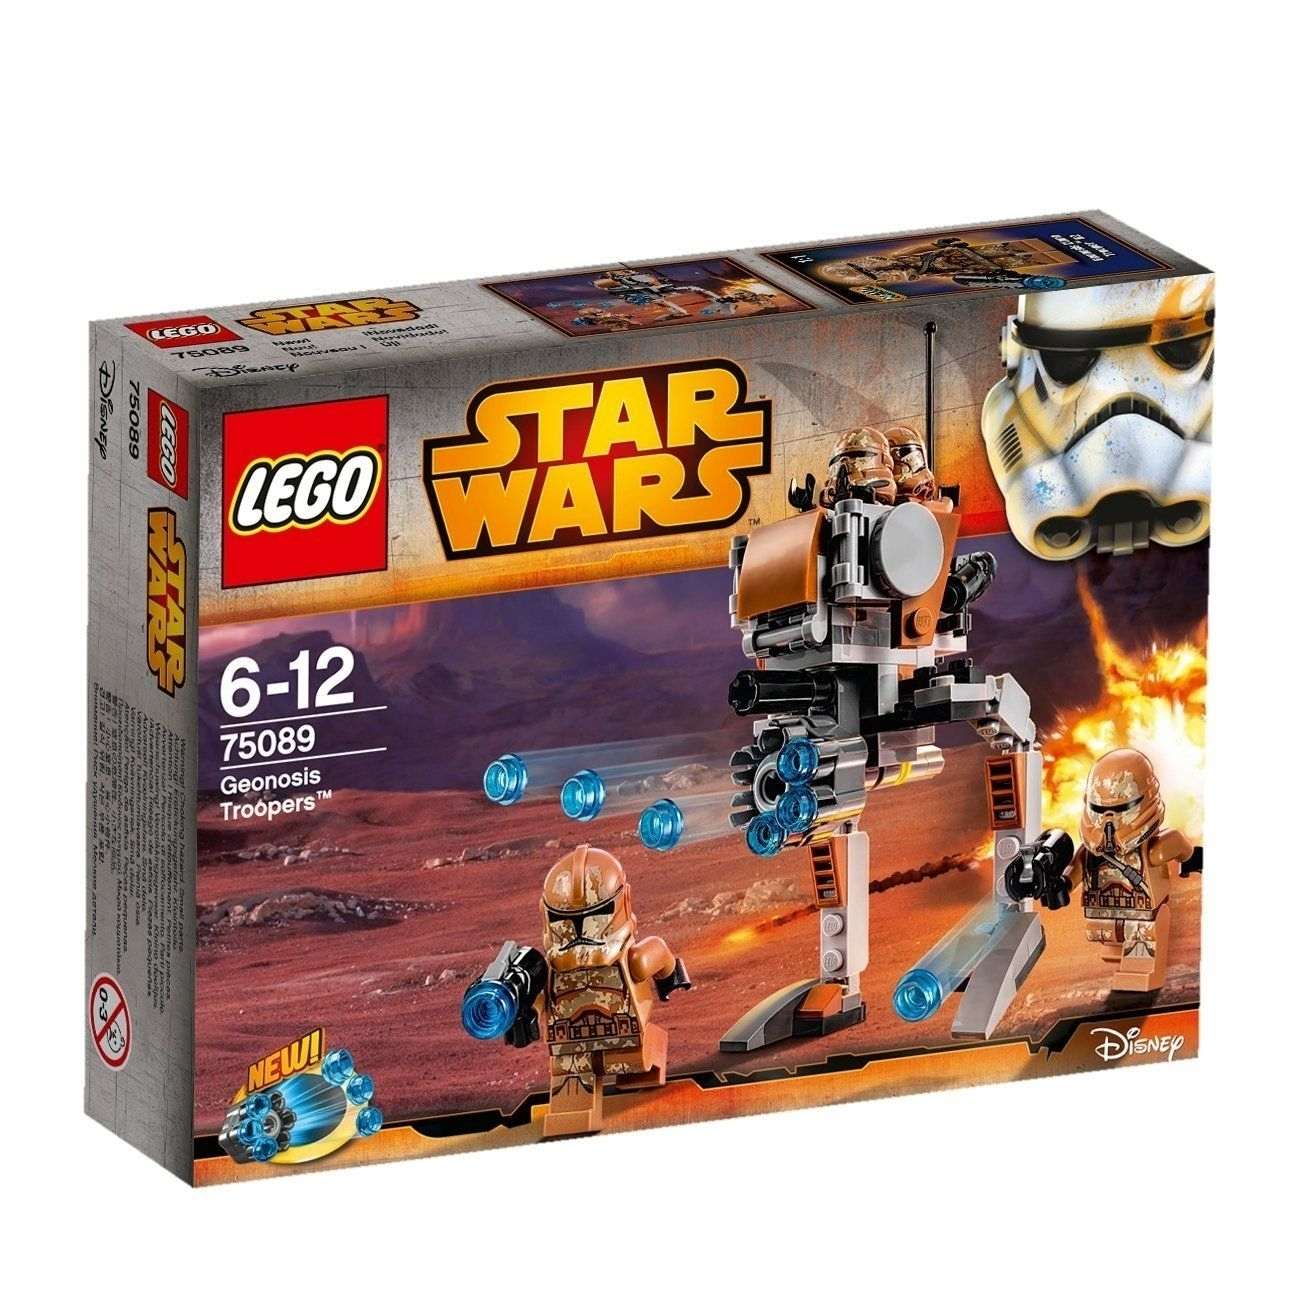 Star Wars Lego Sets Codes | Template Calendar Printable pertaining to Star Wars Lego Sets Code